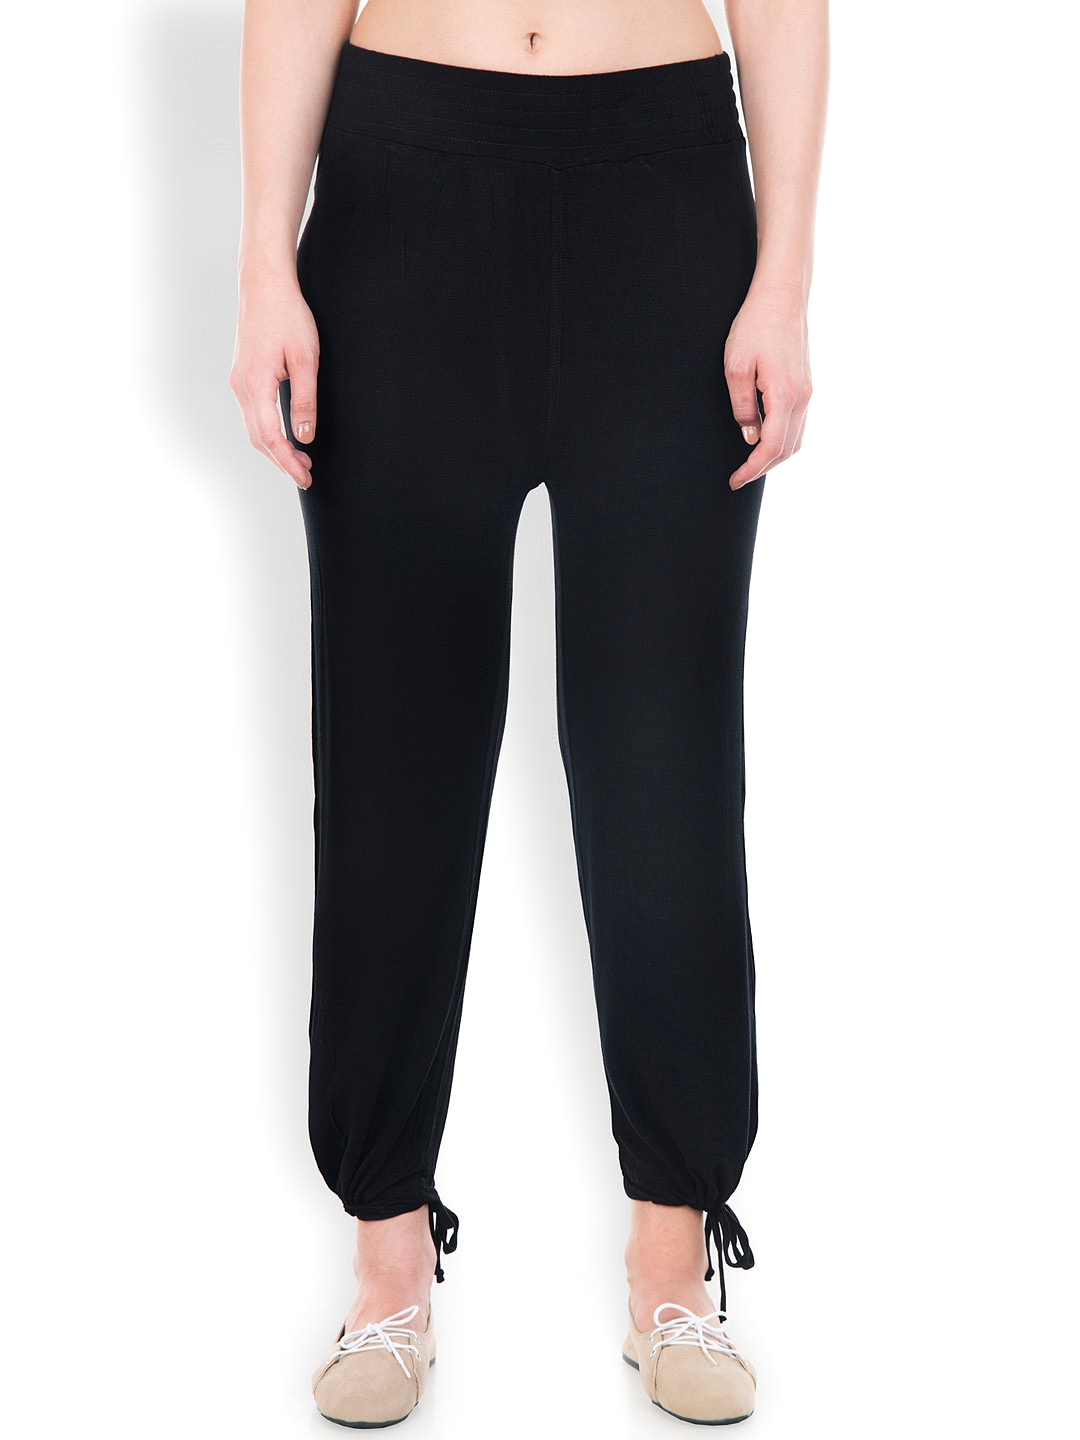 Fantastic  Clothing Women Clothing Lounge Pants Gossip By Dressberry Lounge Pants